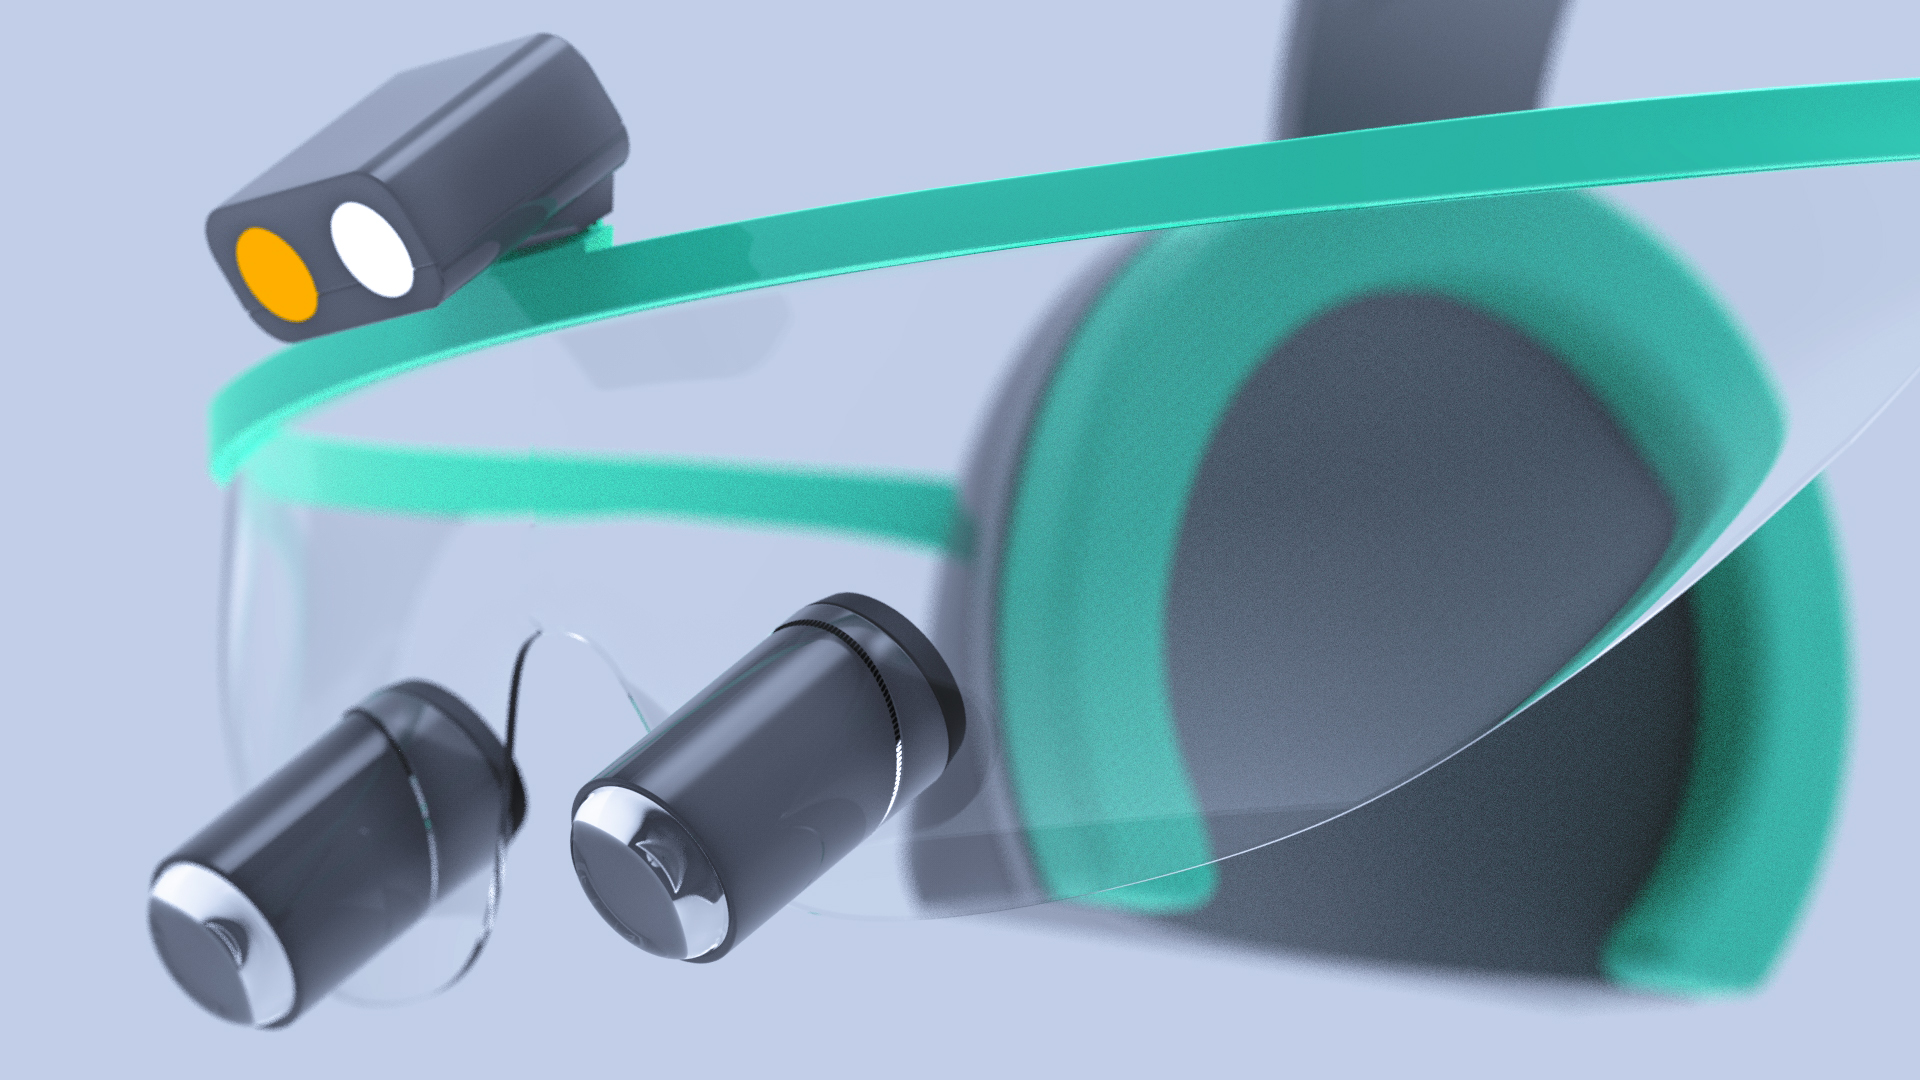 DENTAL LOUPES - Design Research & Concept Development